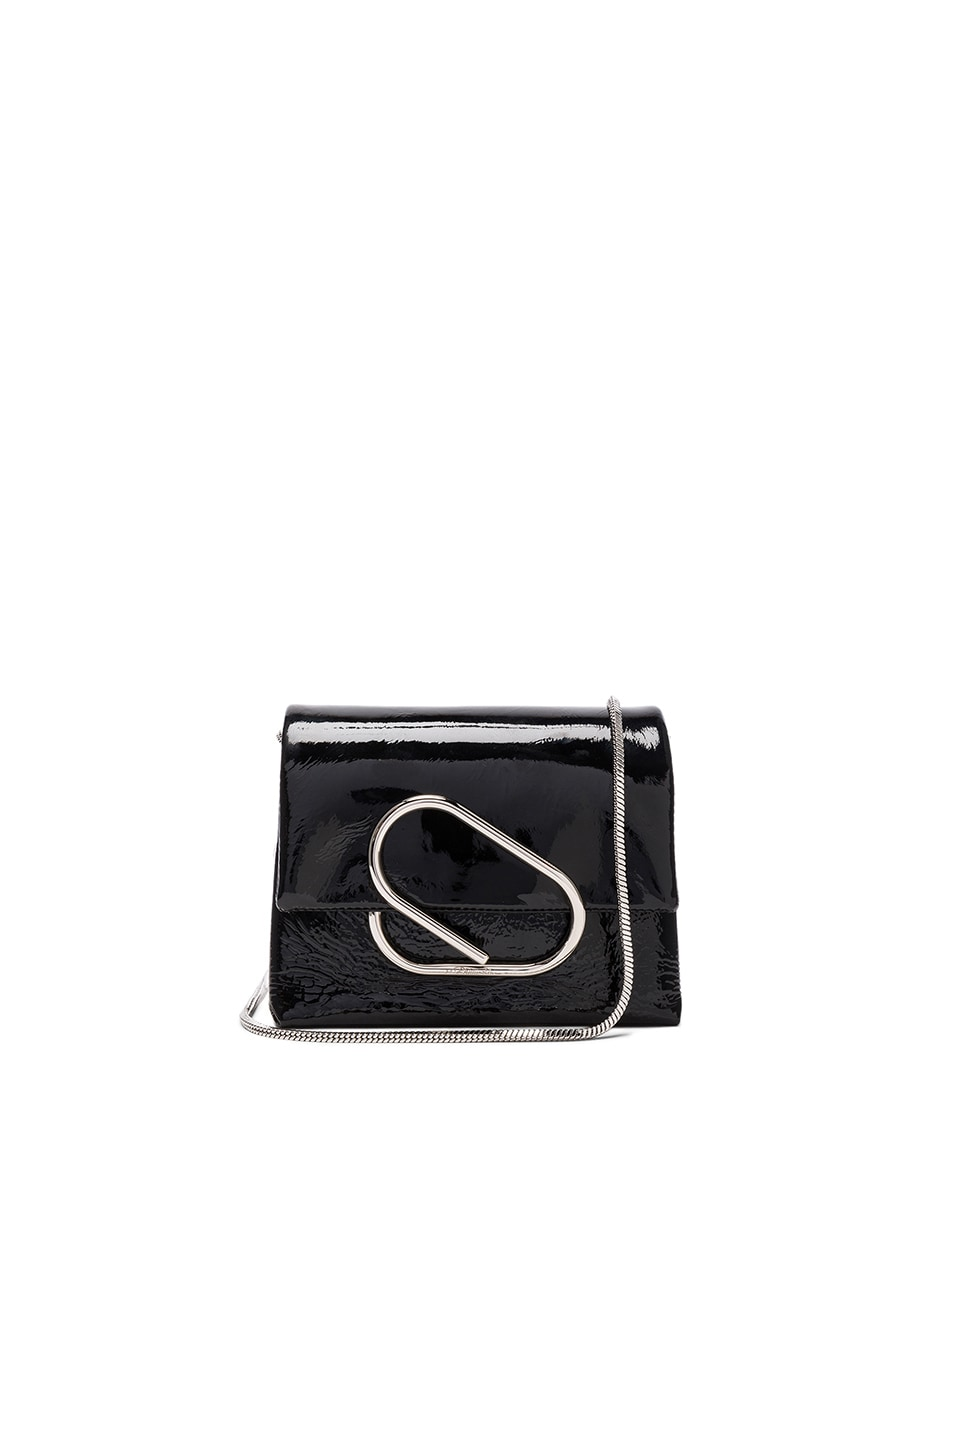 Image 1 of 3.1 phillip lim Alix Micro Crossbody Bag in Black